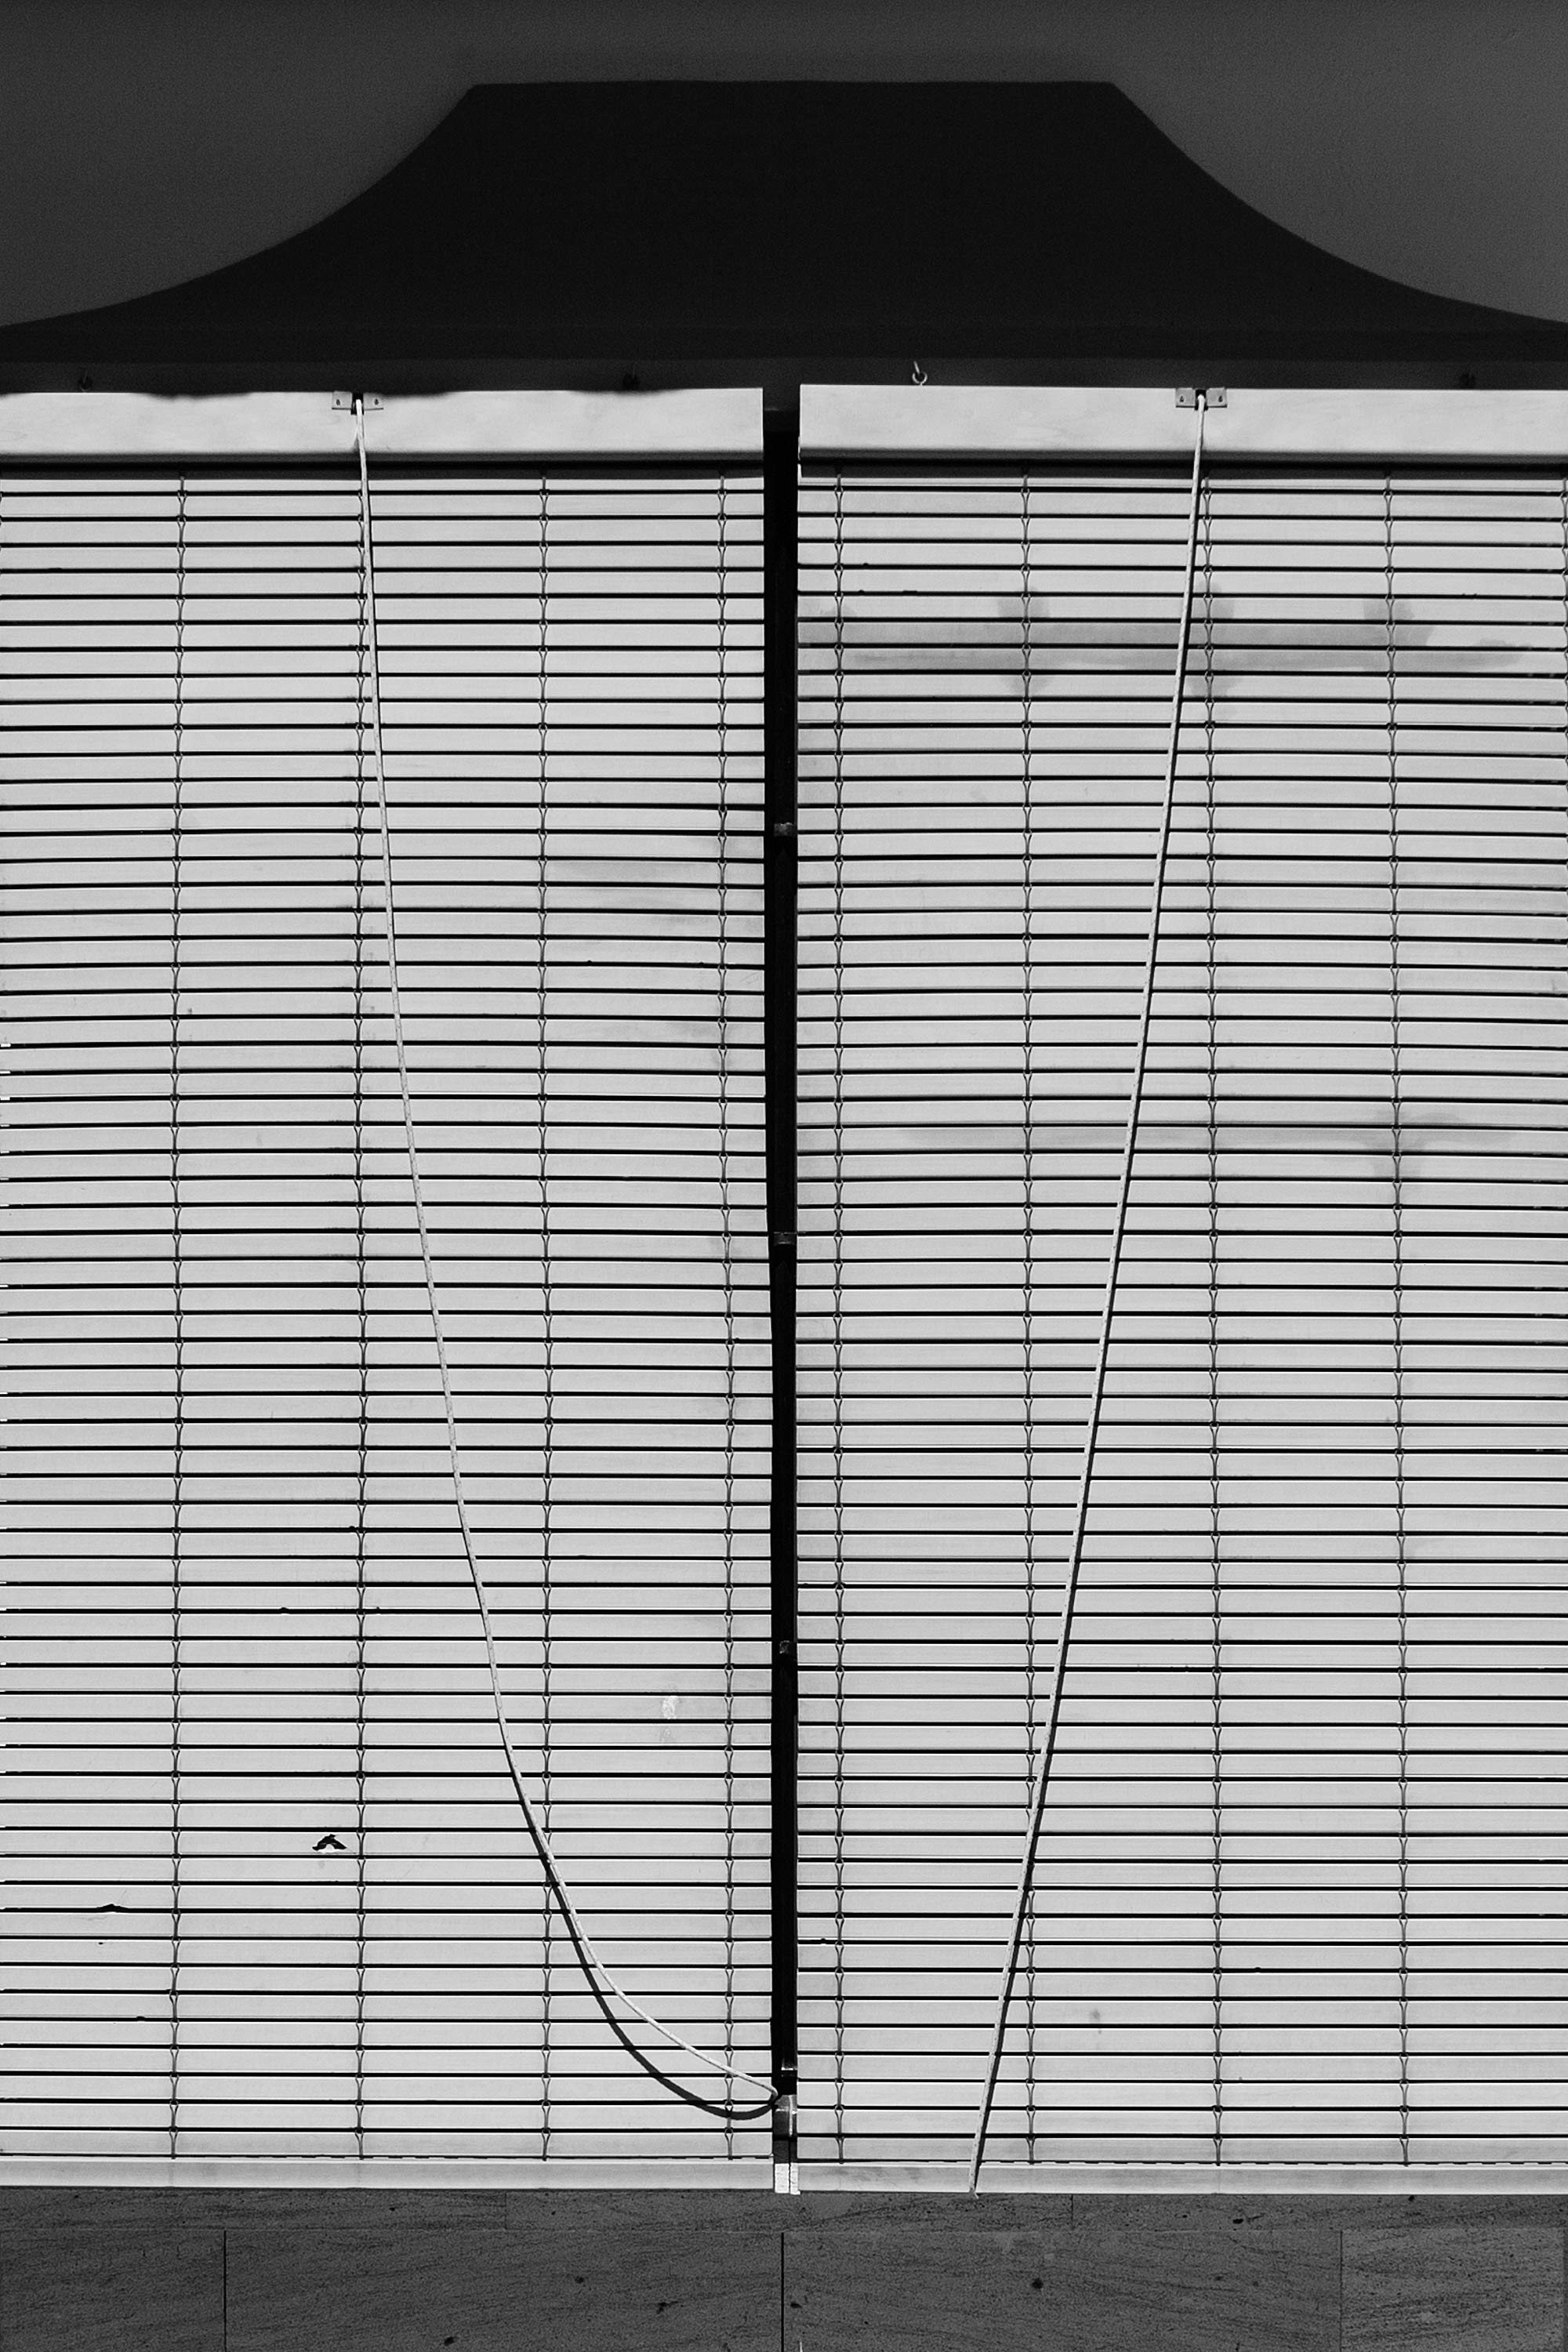 Lone tension_state#3